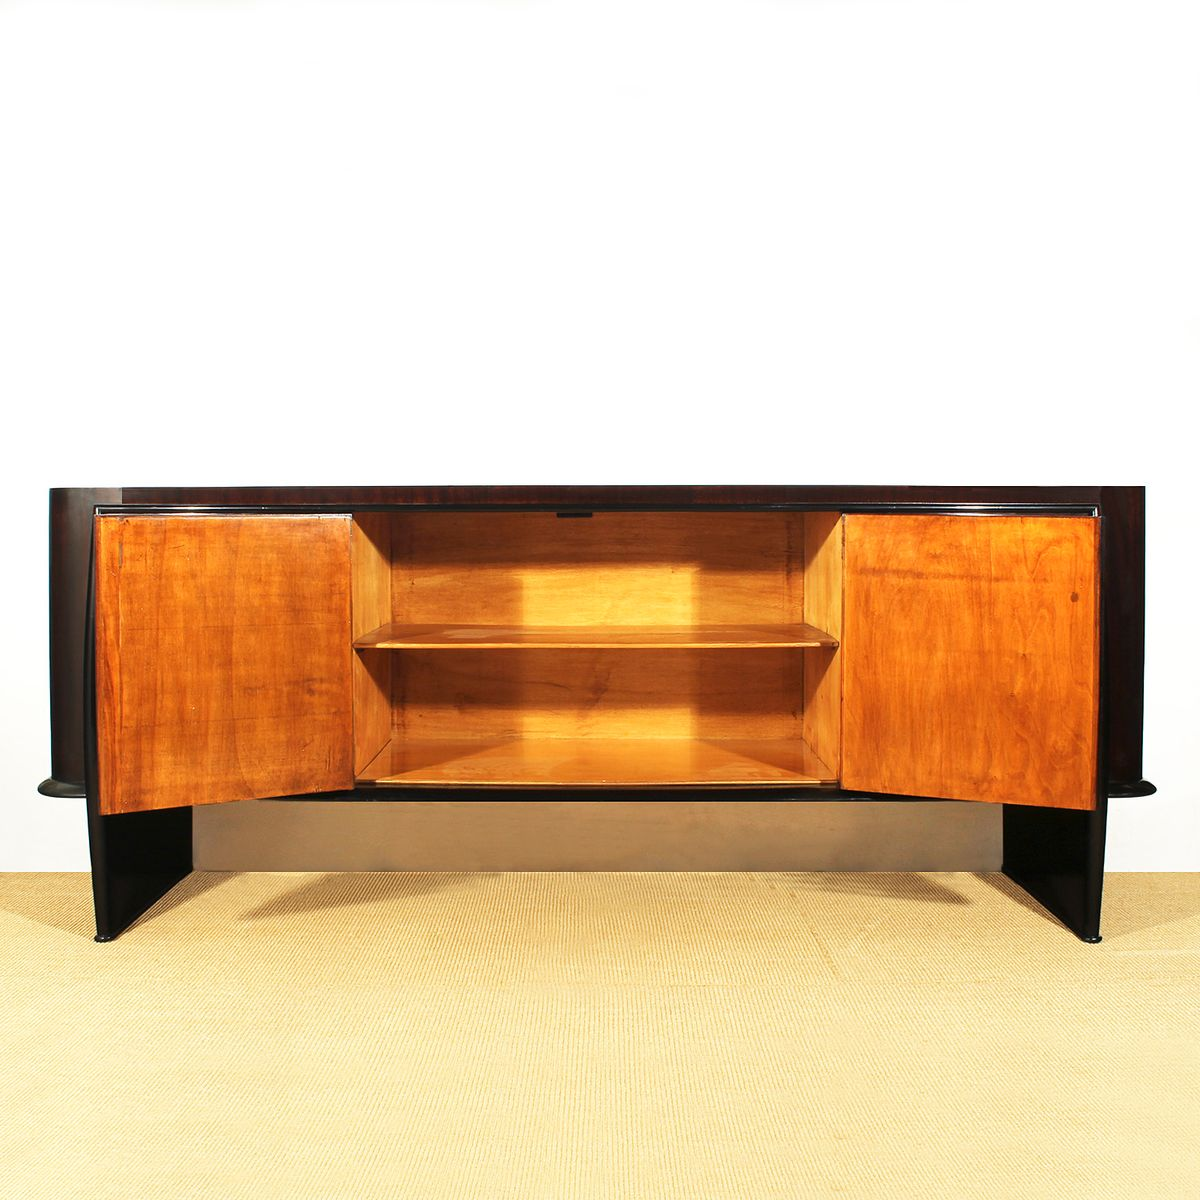 Italian art deco sideboard 1930s for sale at pamono for Miroir art deco 1930